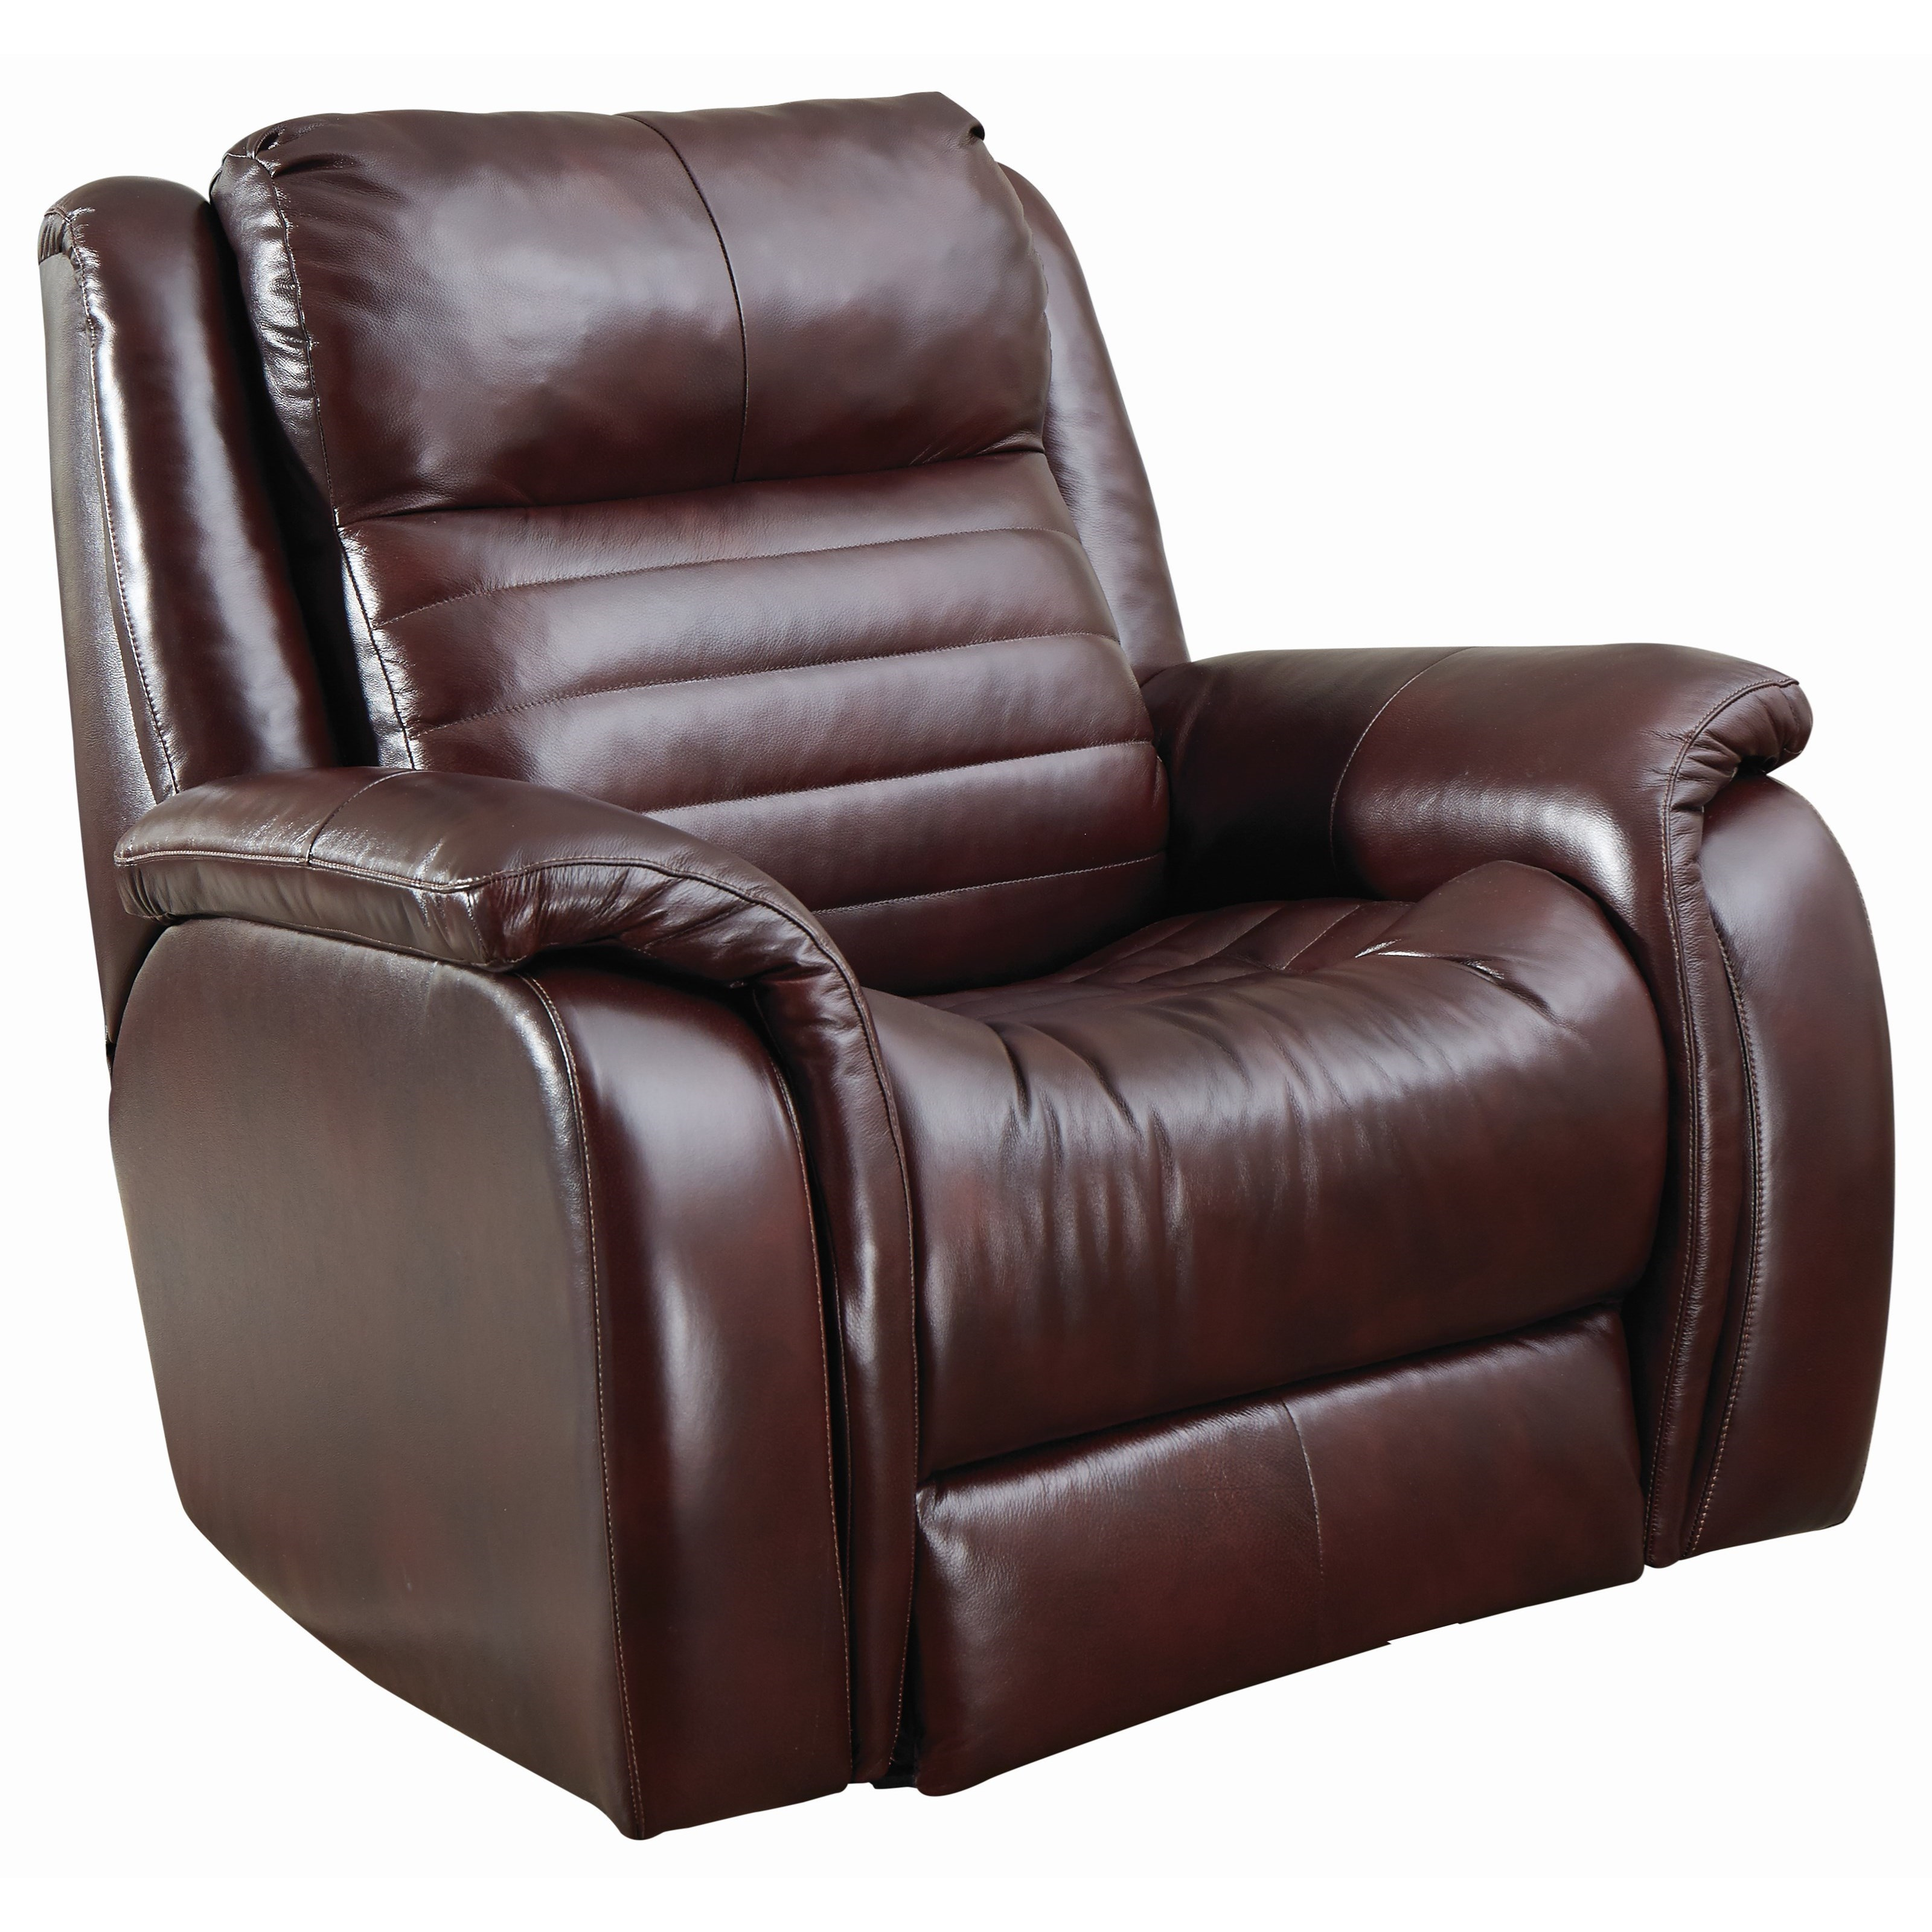 Essex Rocker Recliner by Southern Motion at Johnny Janosik